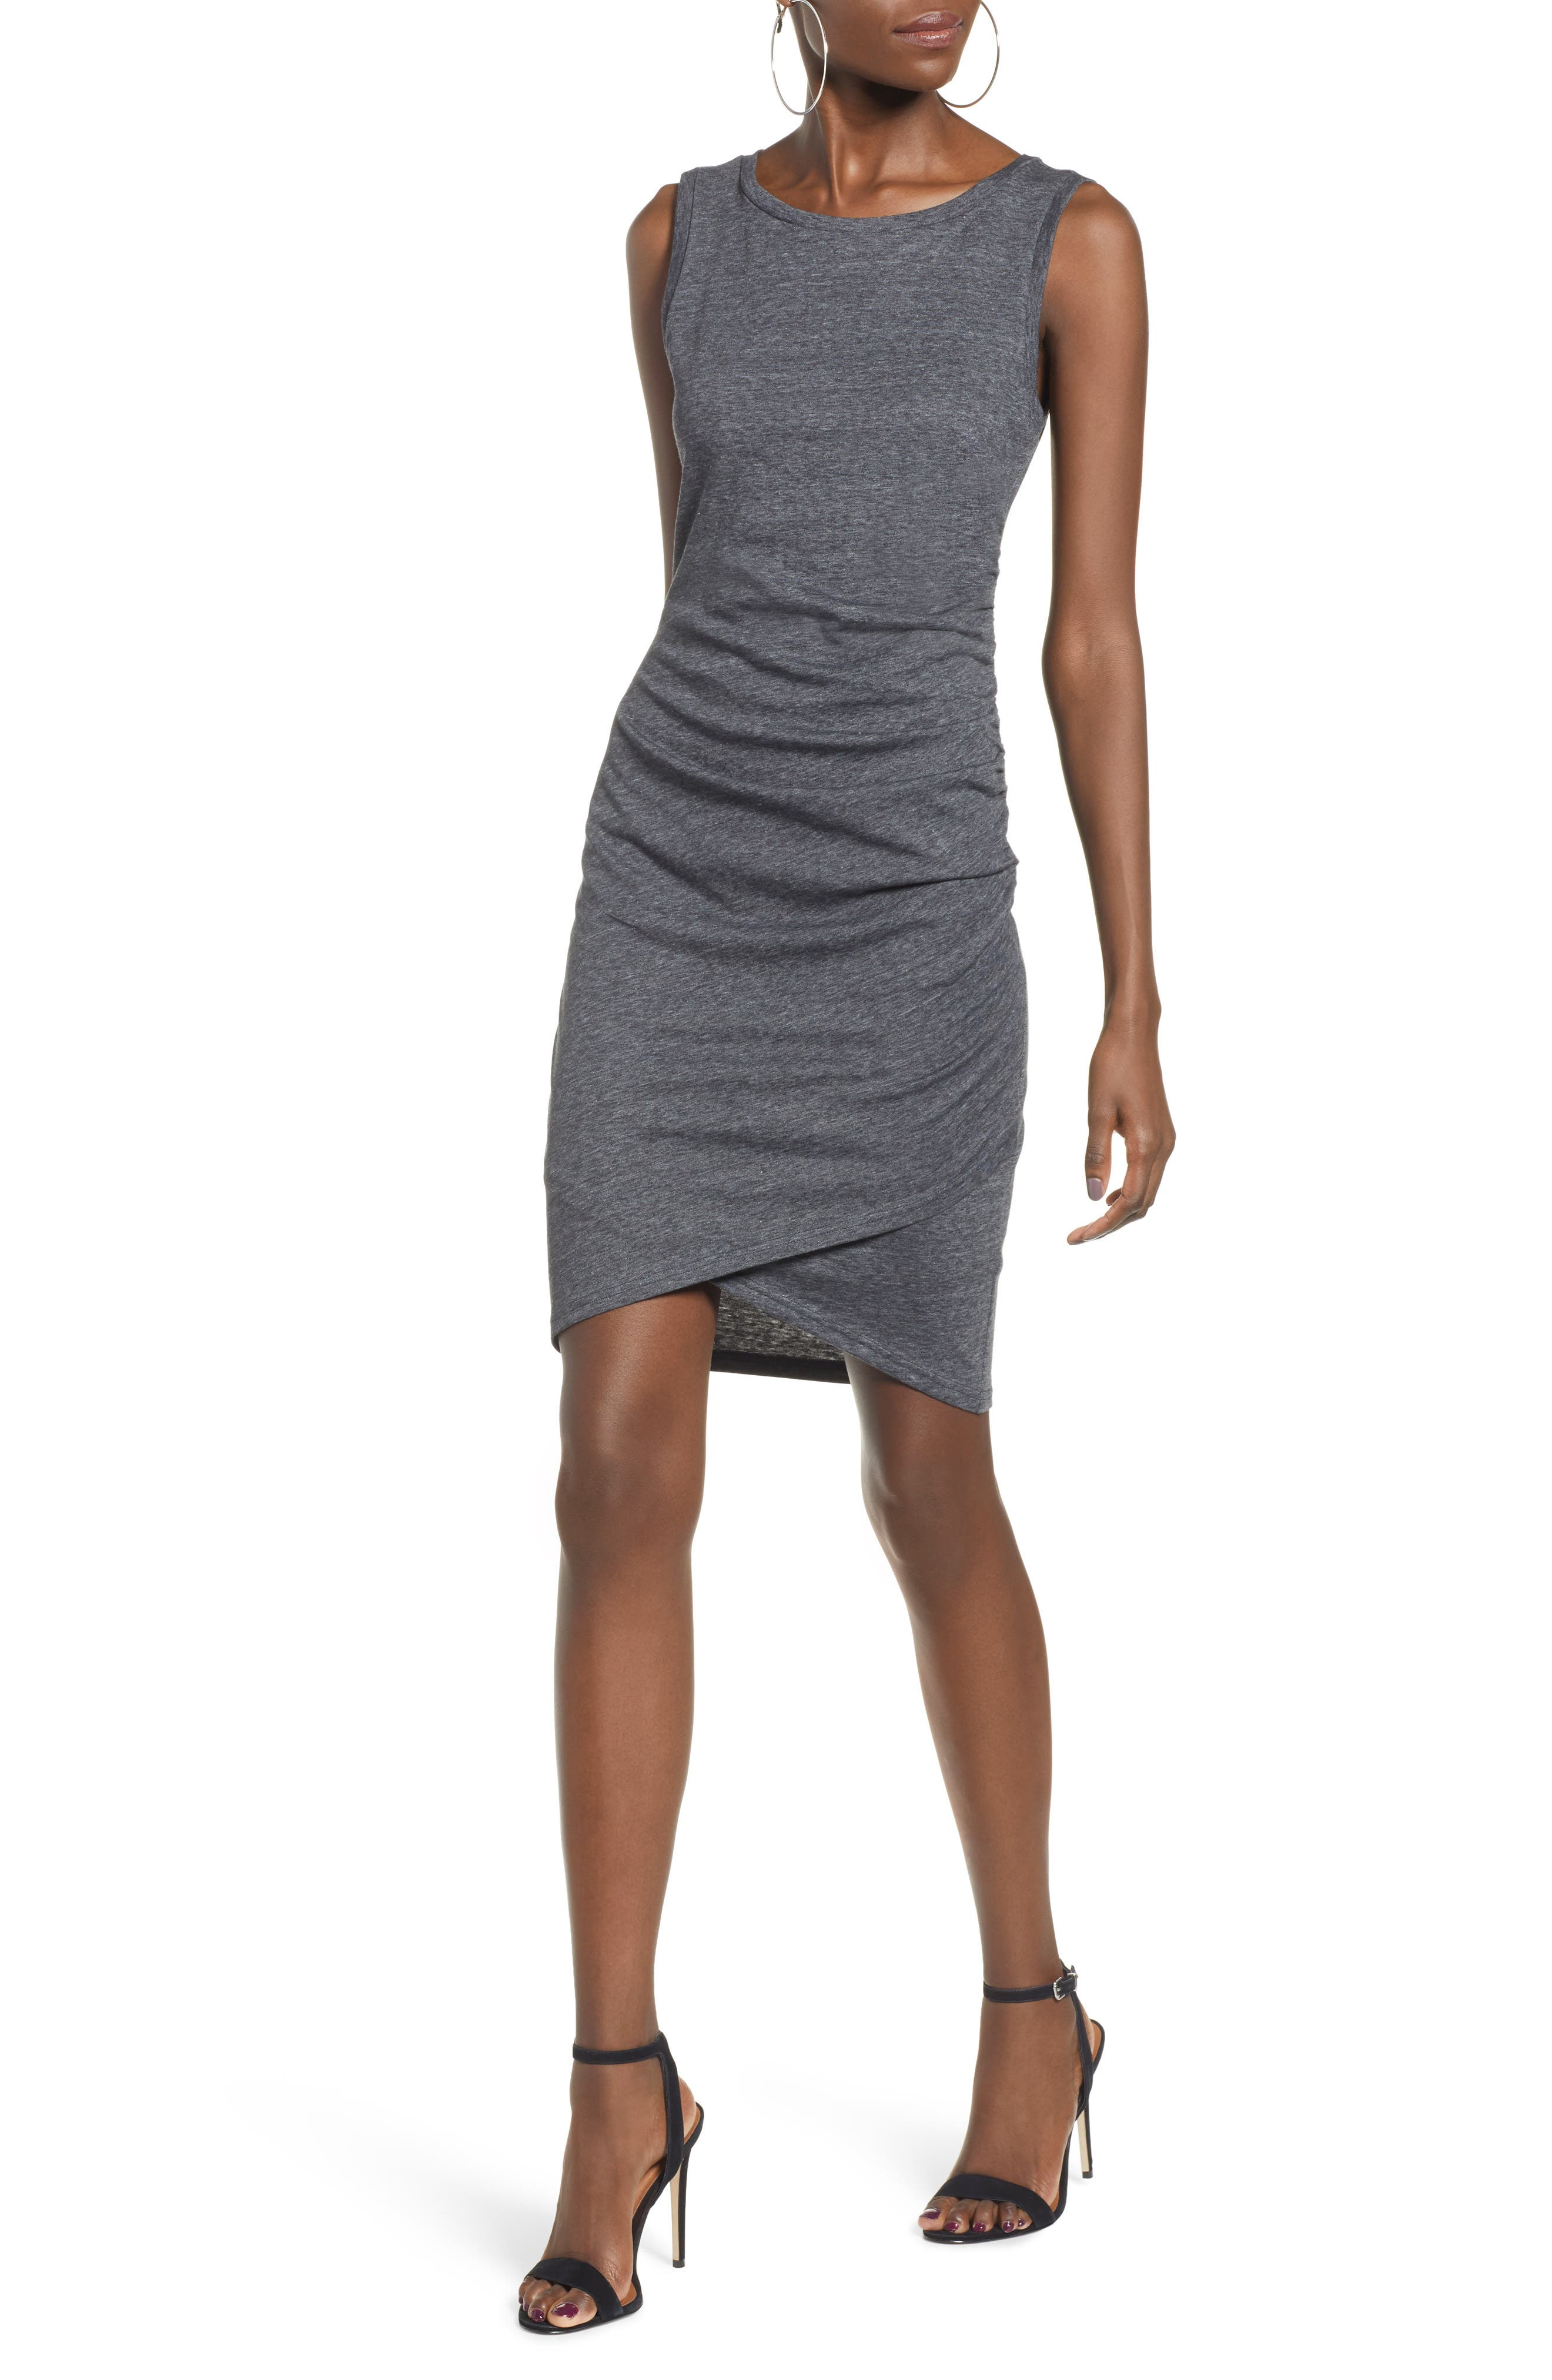 Gentle ruching at one side adds soft texture to a slinky tulip-hem tank dress - a beloved Nordstrom brand style. Style Name: Leith Ruched Body-Con Tank Dress. Style Number: 435950 9. Available in stores.